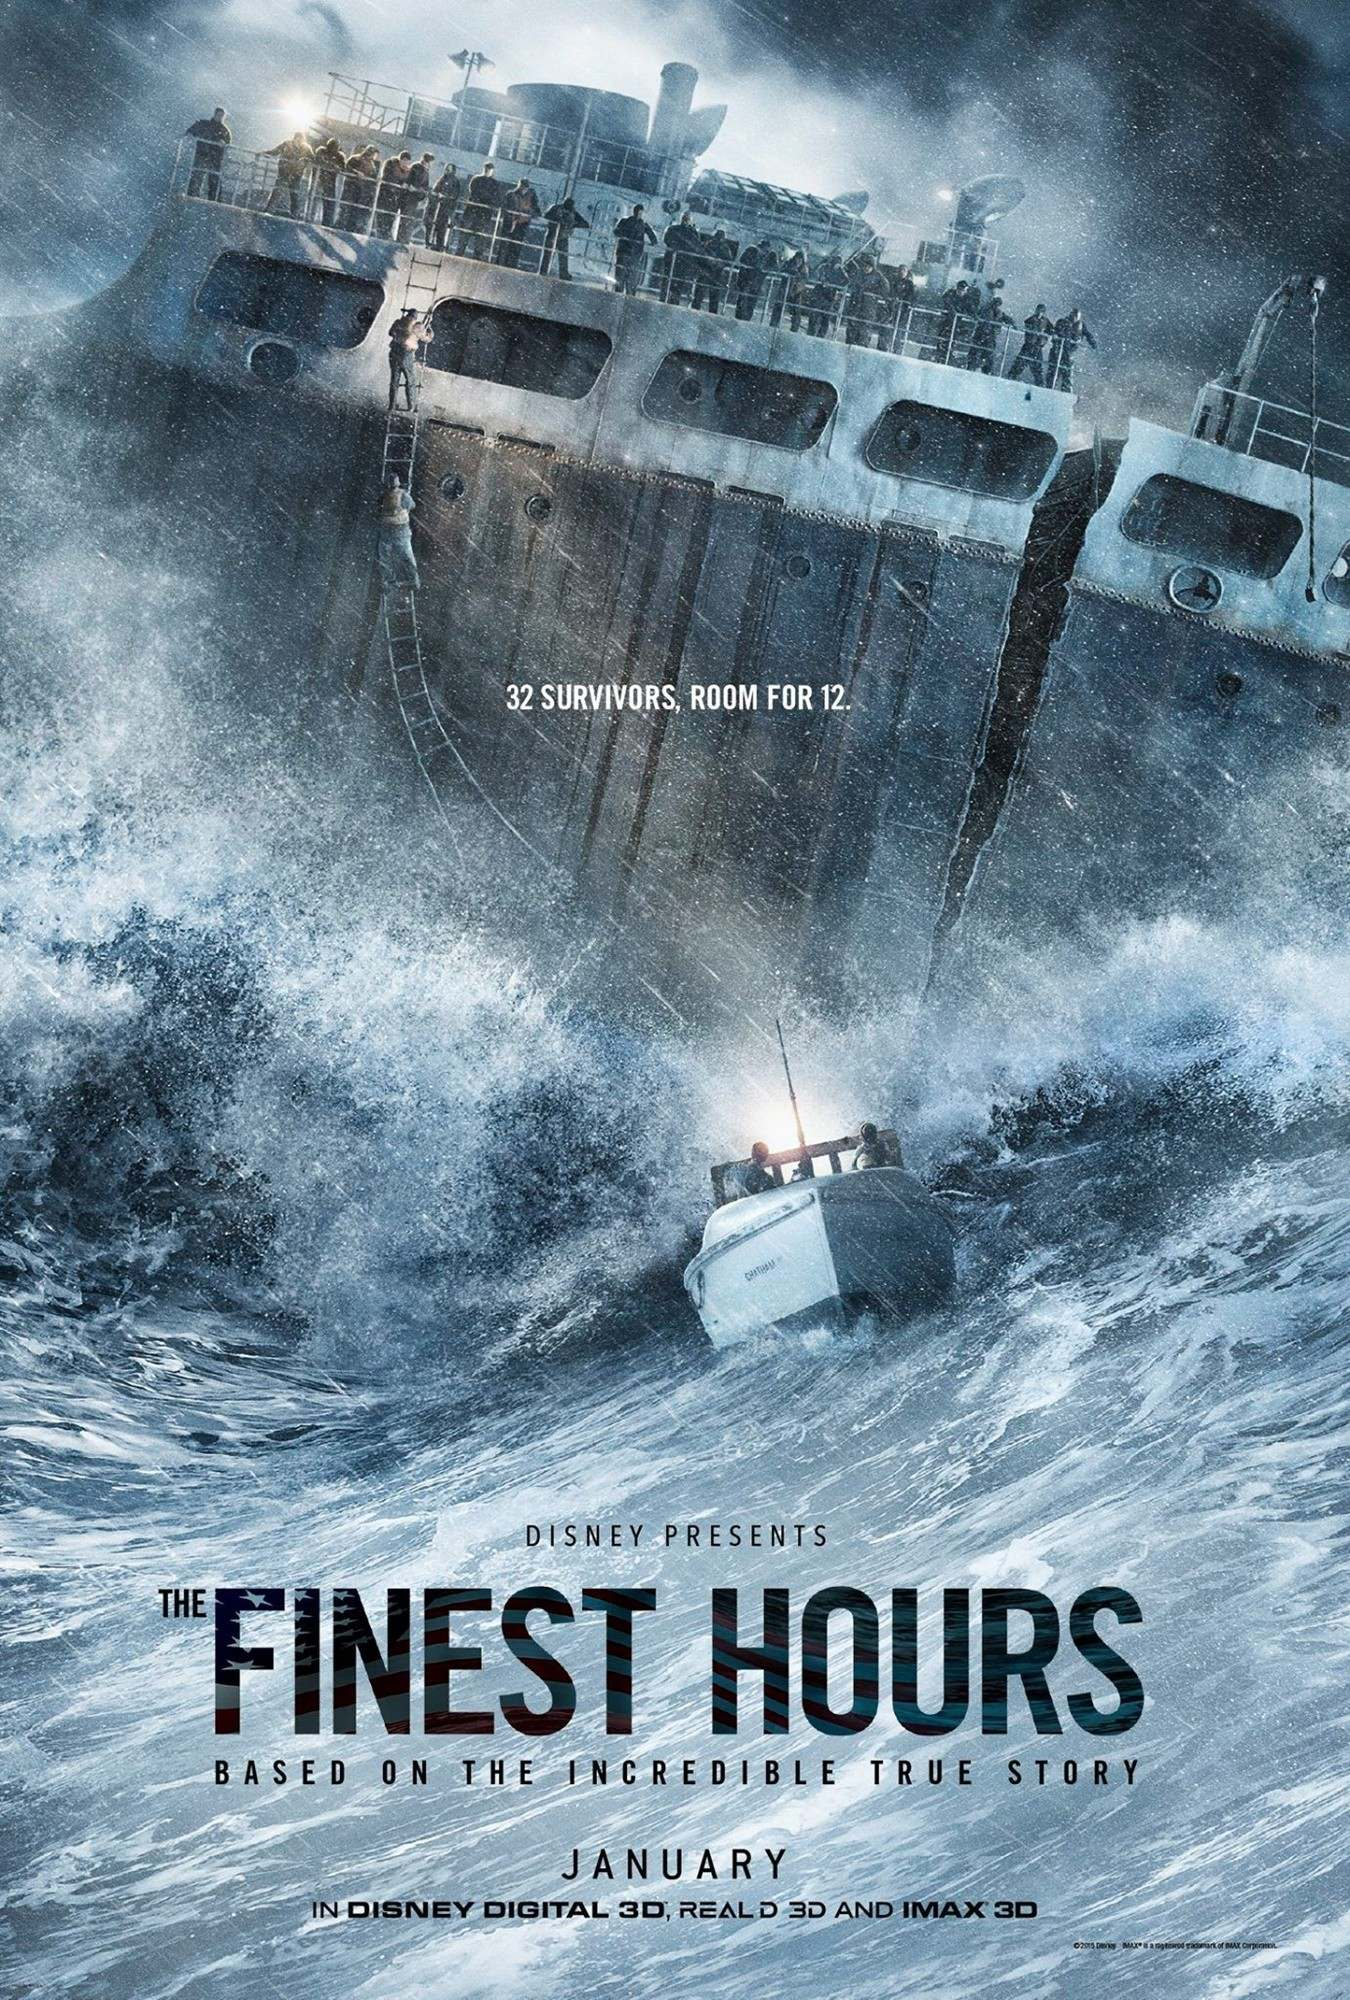 the-finest-hours-poster01.jpg